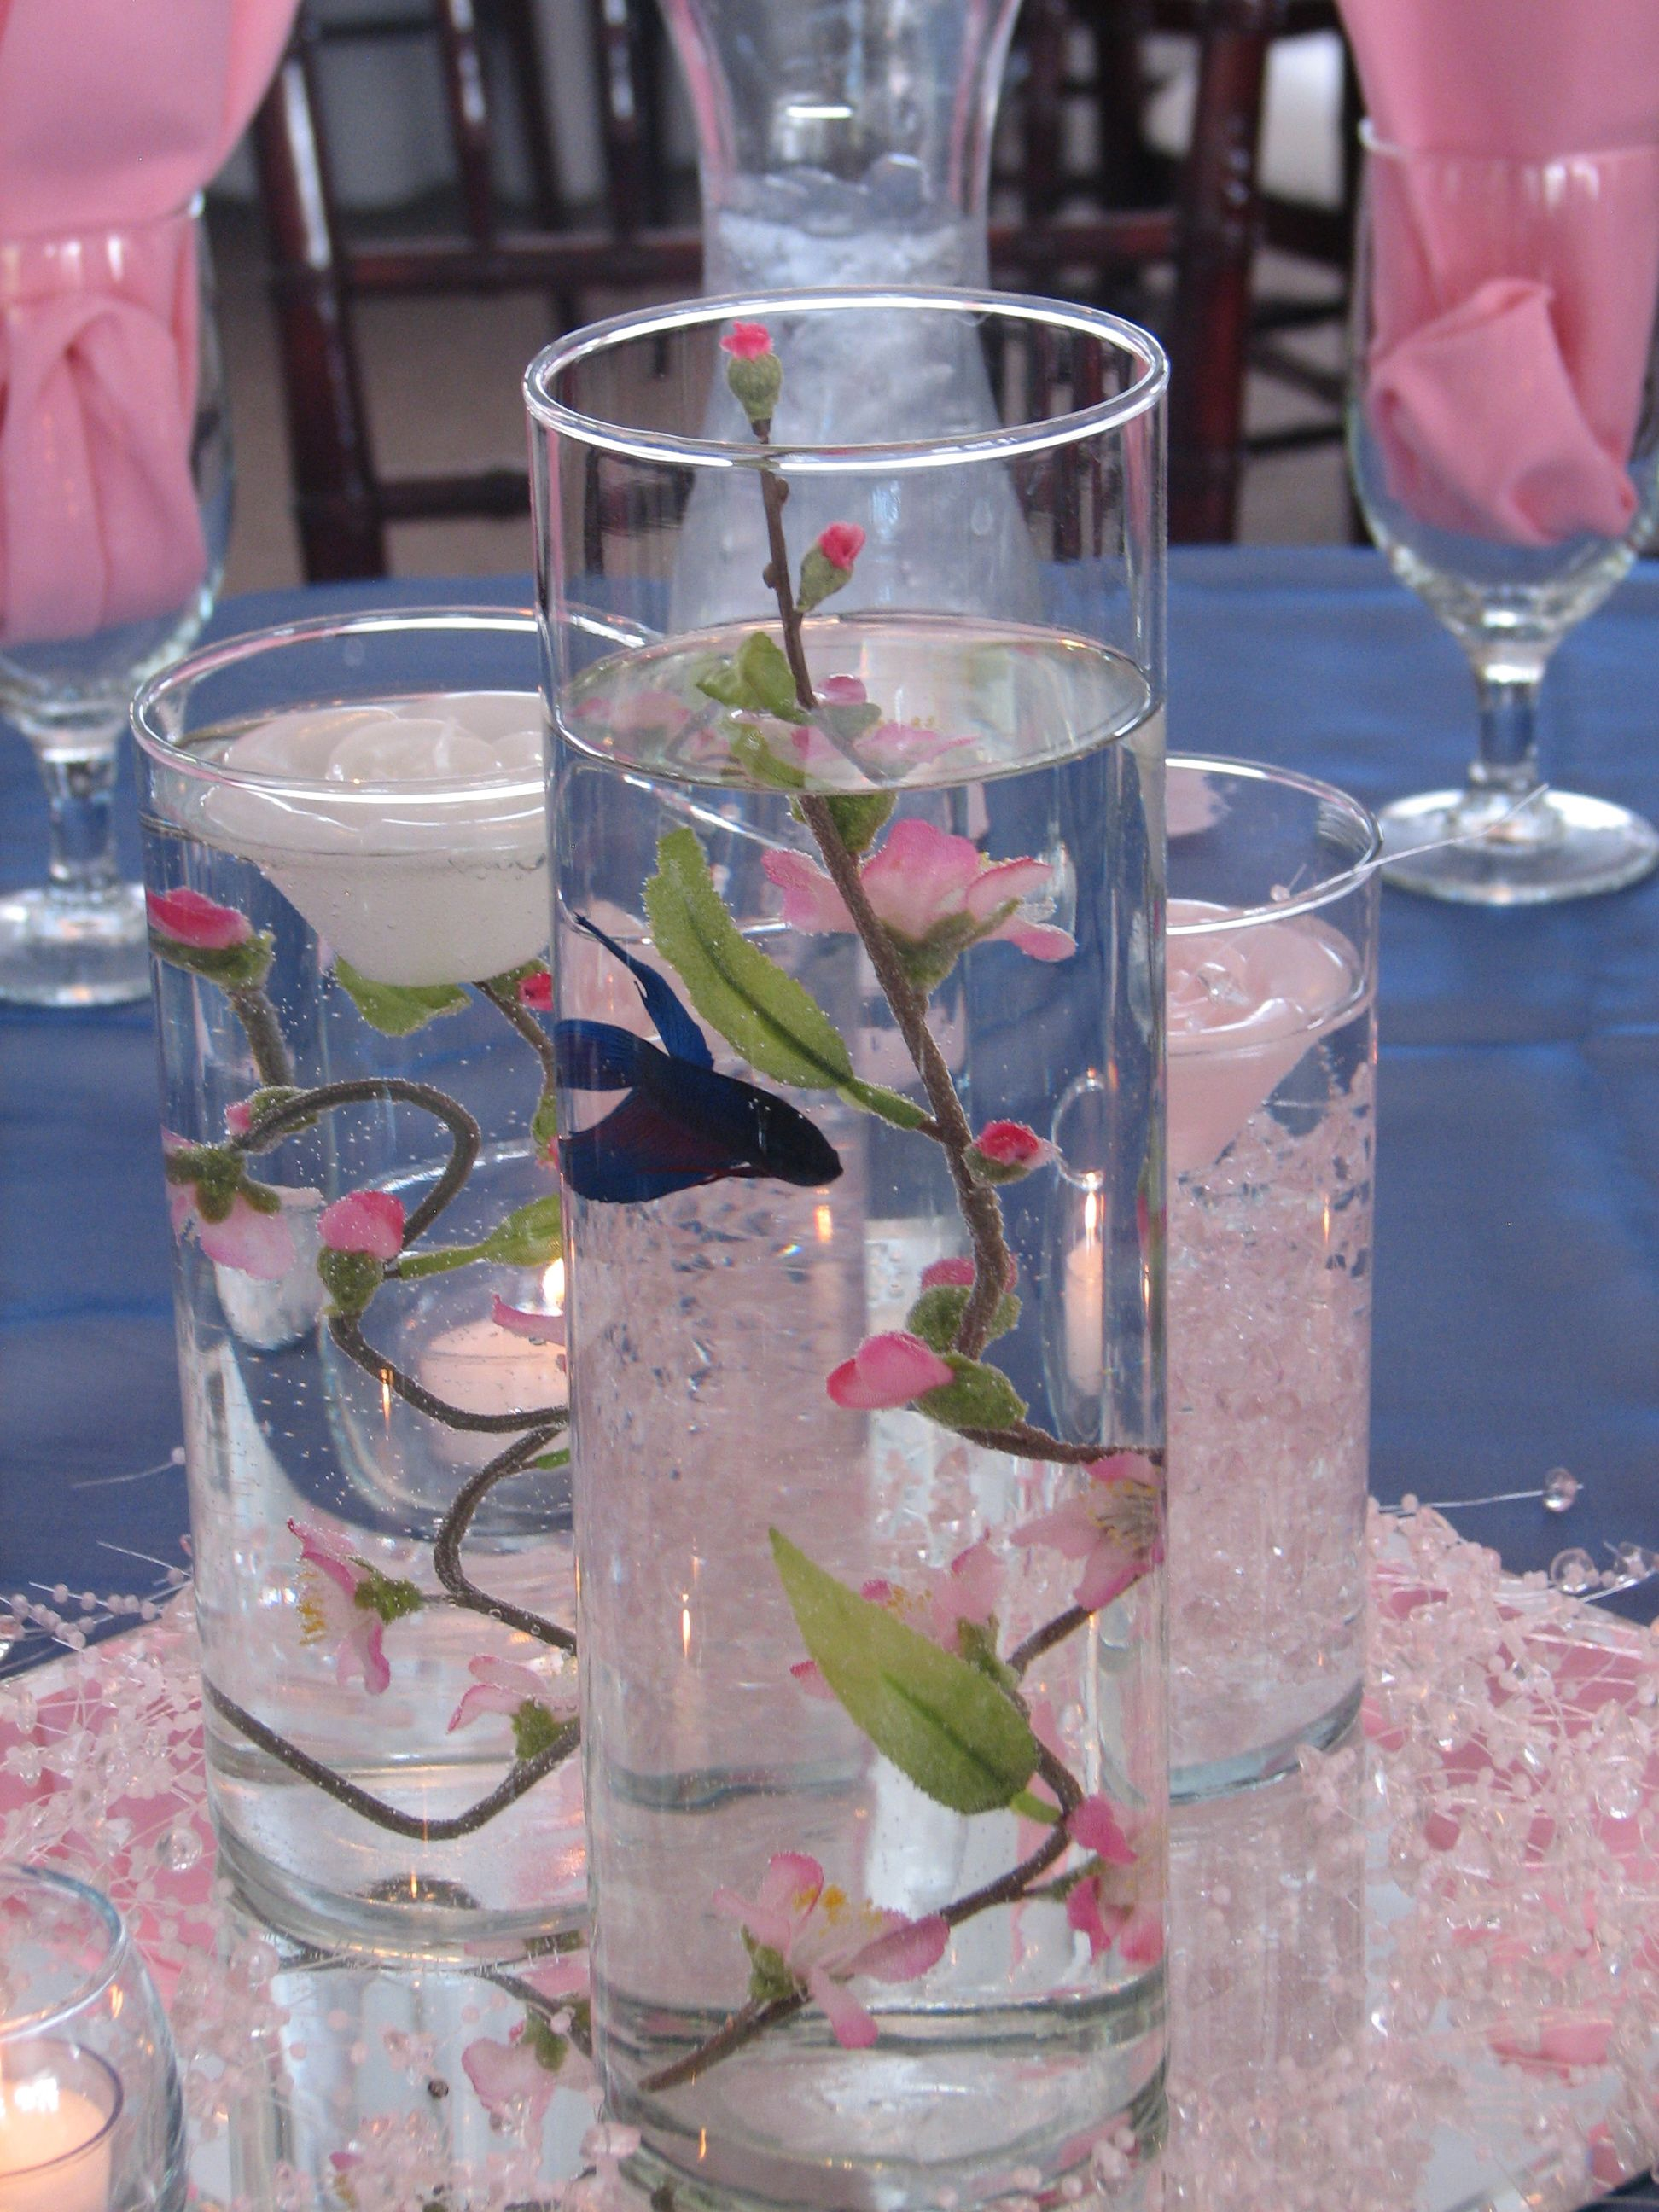 Beta fish in cylinder for our bathroom kari fish and for Fish centerpieces wedding receptions